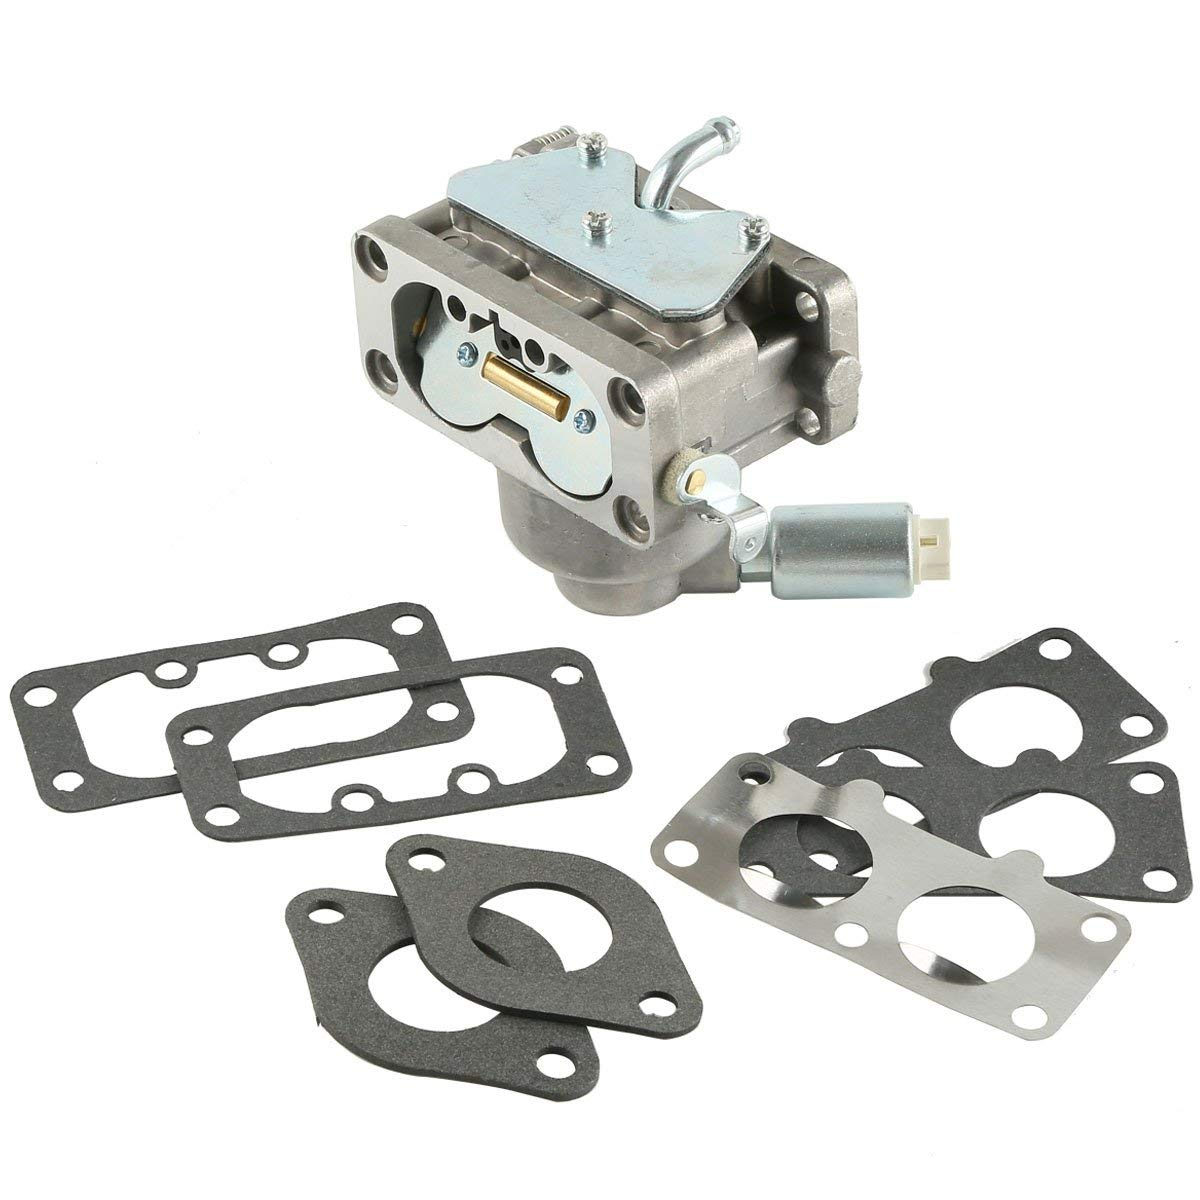 Buy Right Muffler and Manifold to fit 21-23hp Briggs Vanguard